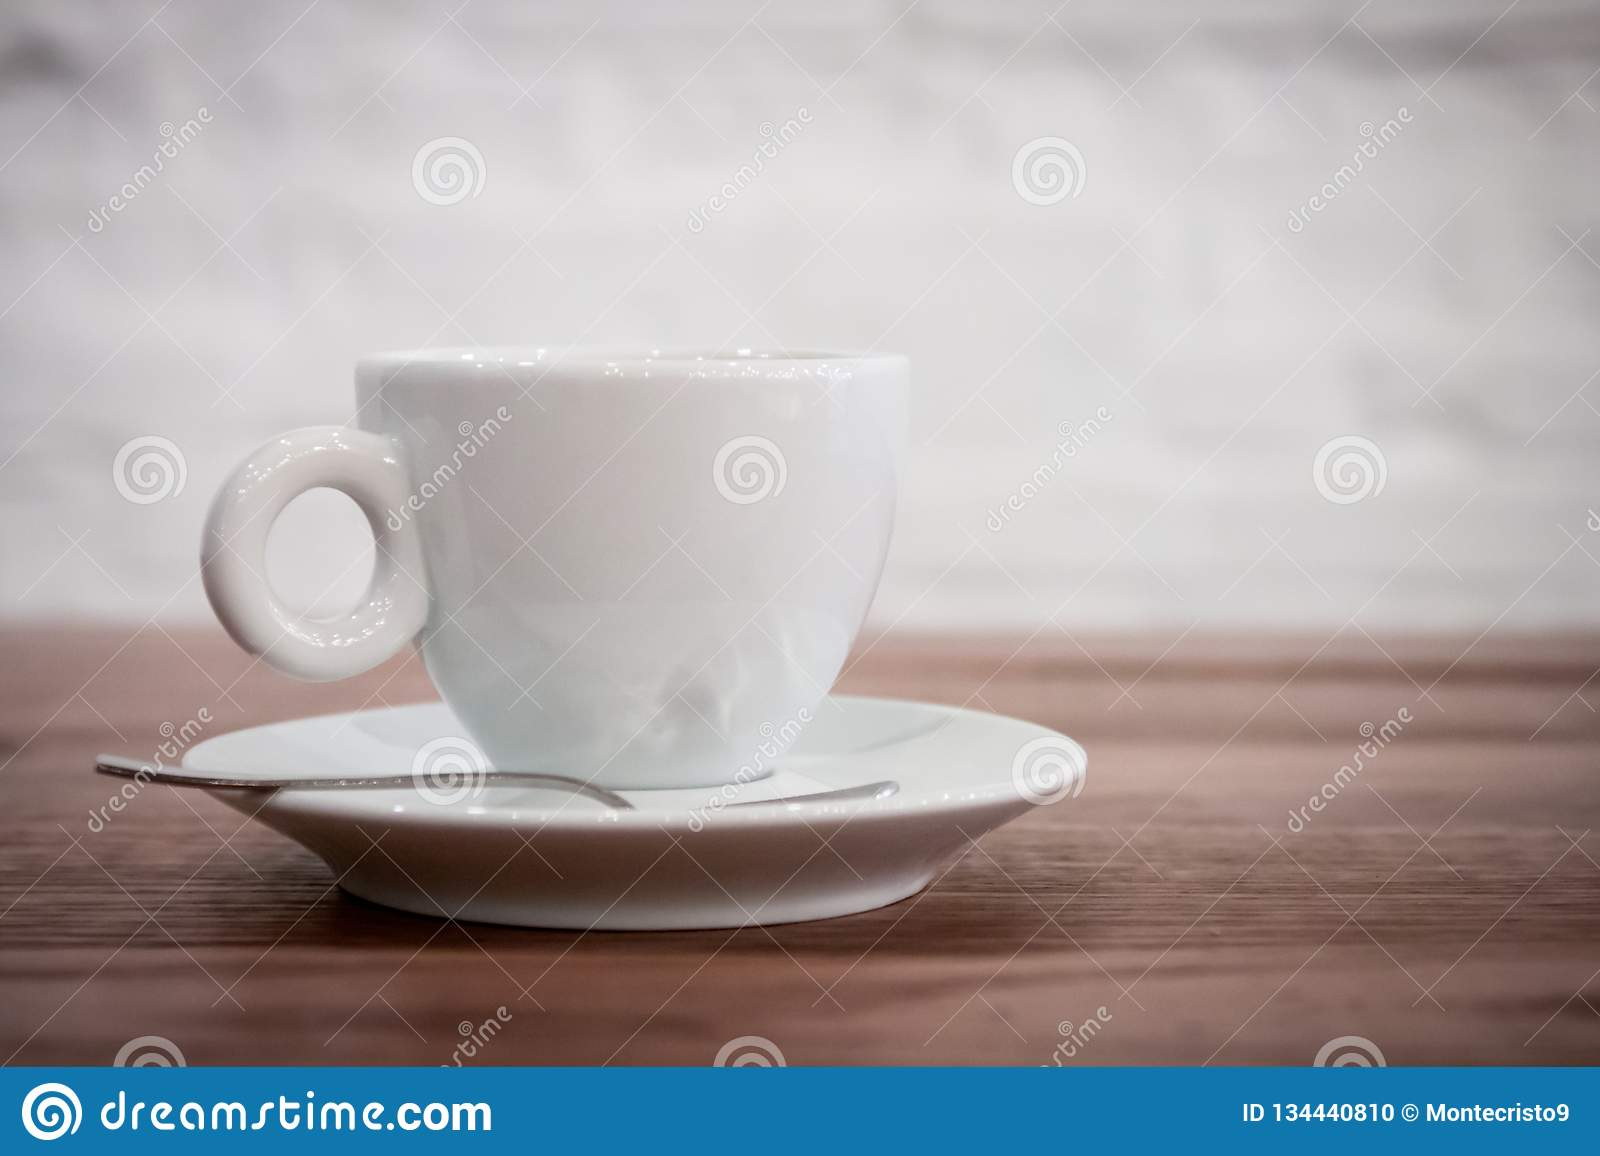 A Cup Of Coffee On A Saucer And A Spoon Stands On A Wooden Table